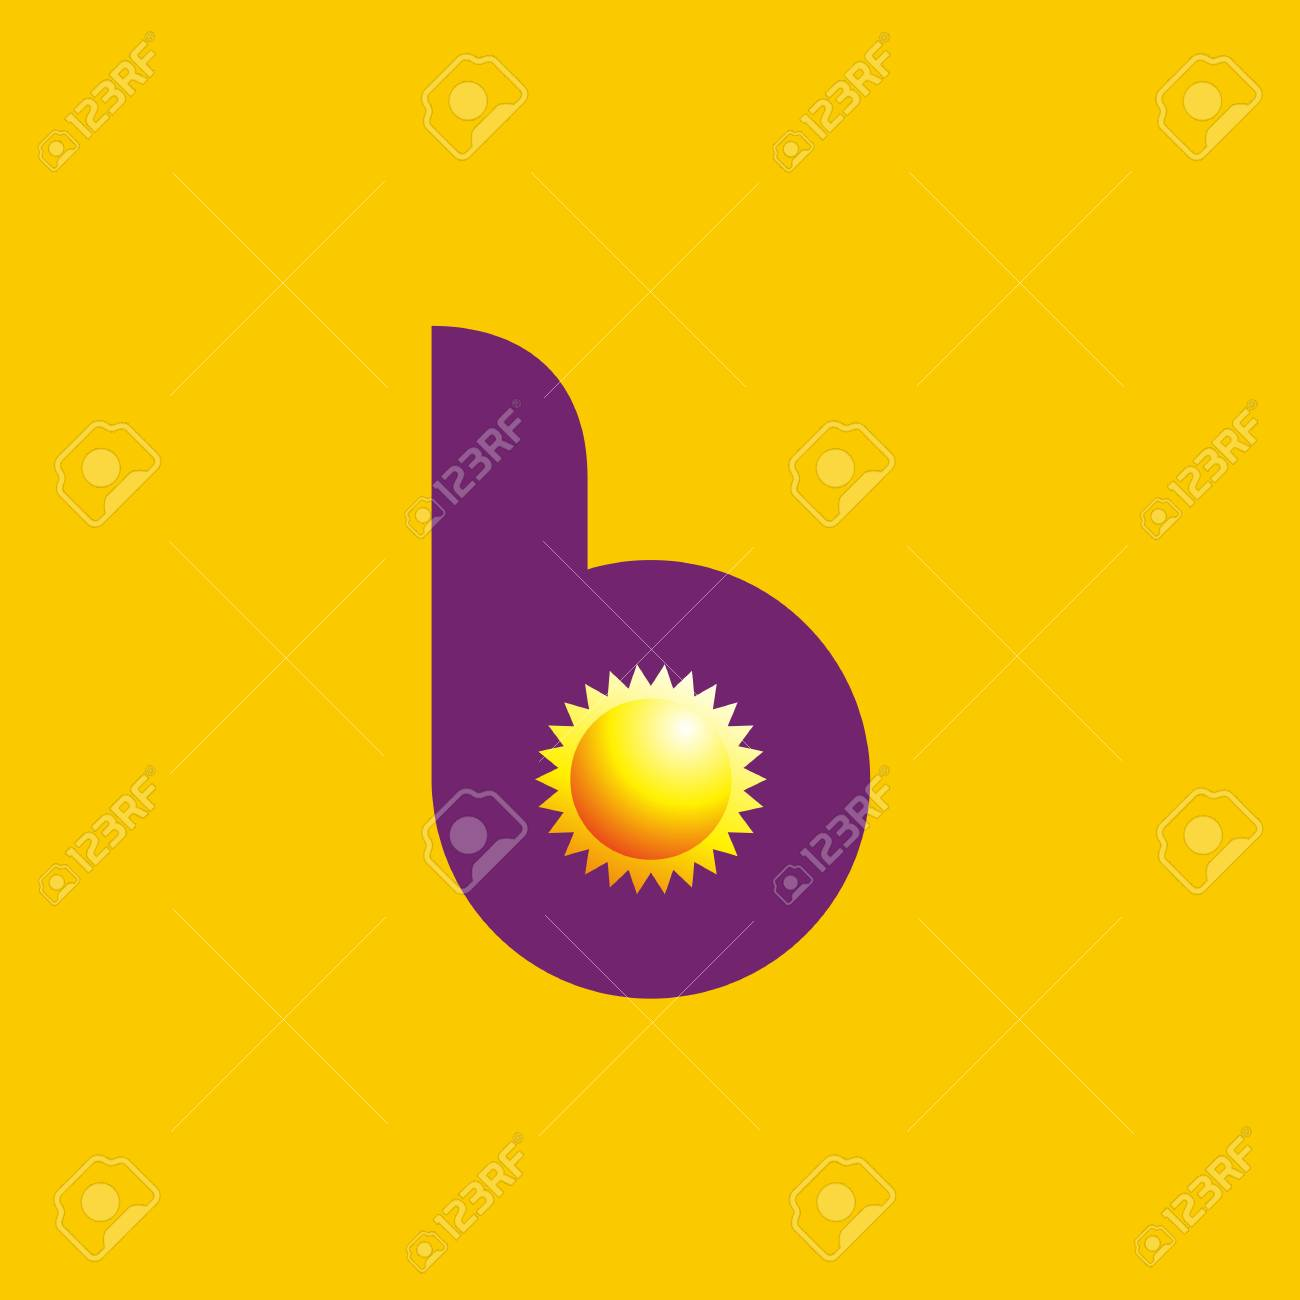 letter b sun logo icon design template elements on yellow background